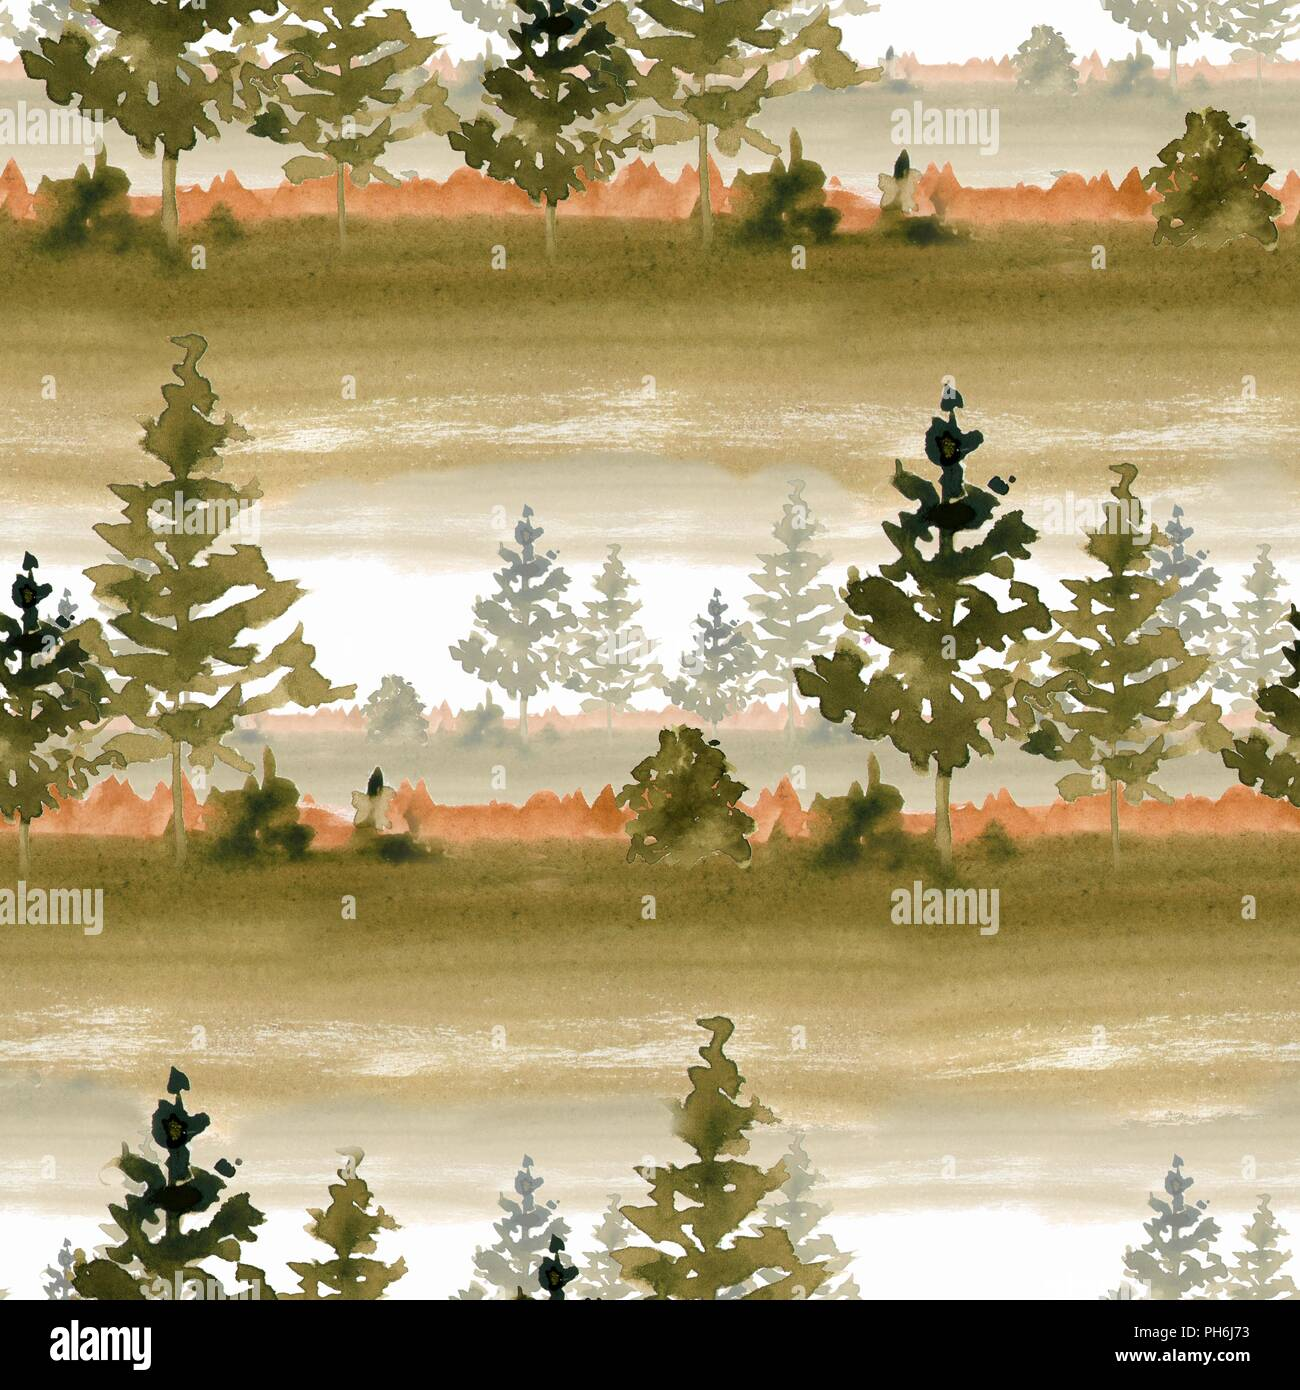 seamless pattern with autumn forest watercolor landscape stock photo alamy https www alamy com seamless pattern with autumn forest watercolor landscape image217119591 html